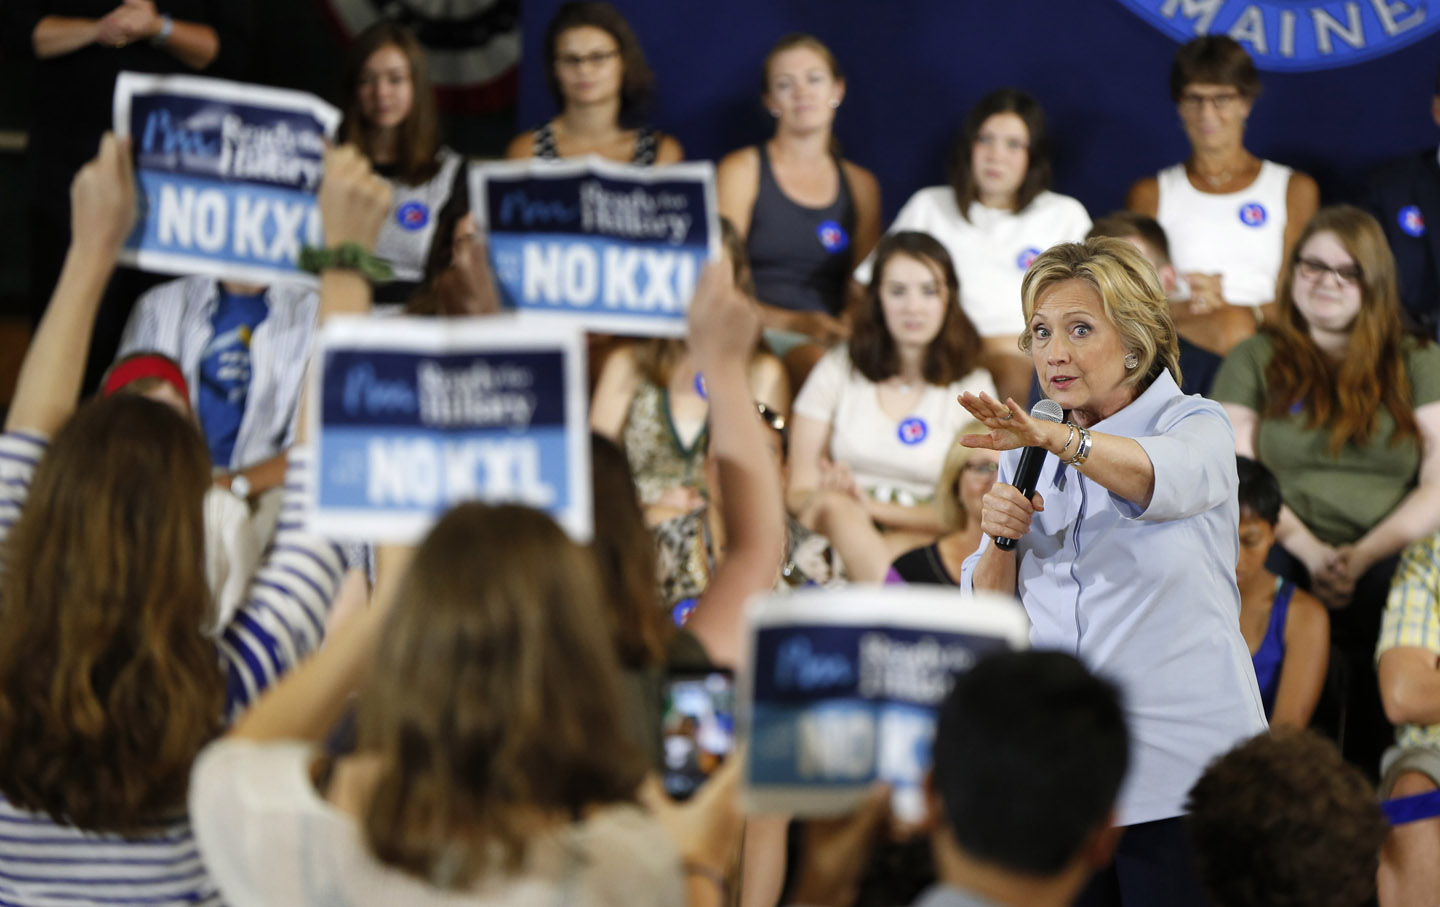 Hillary Clinton asks a group opposing the Keystone pipeline to stop disrupting her campaign event in Portland, Maine